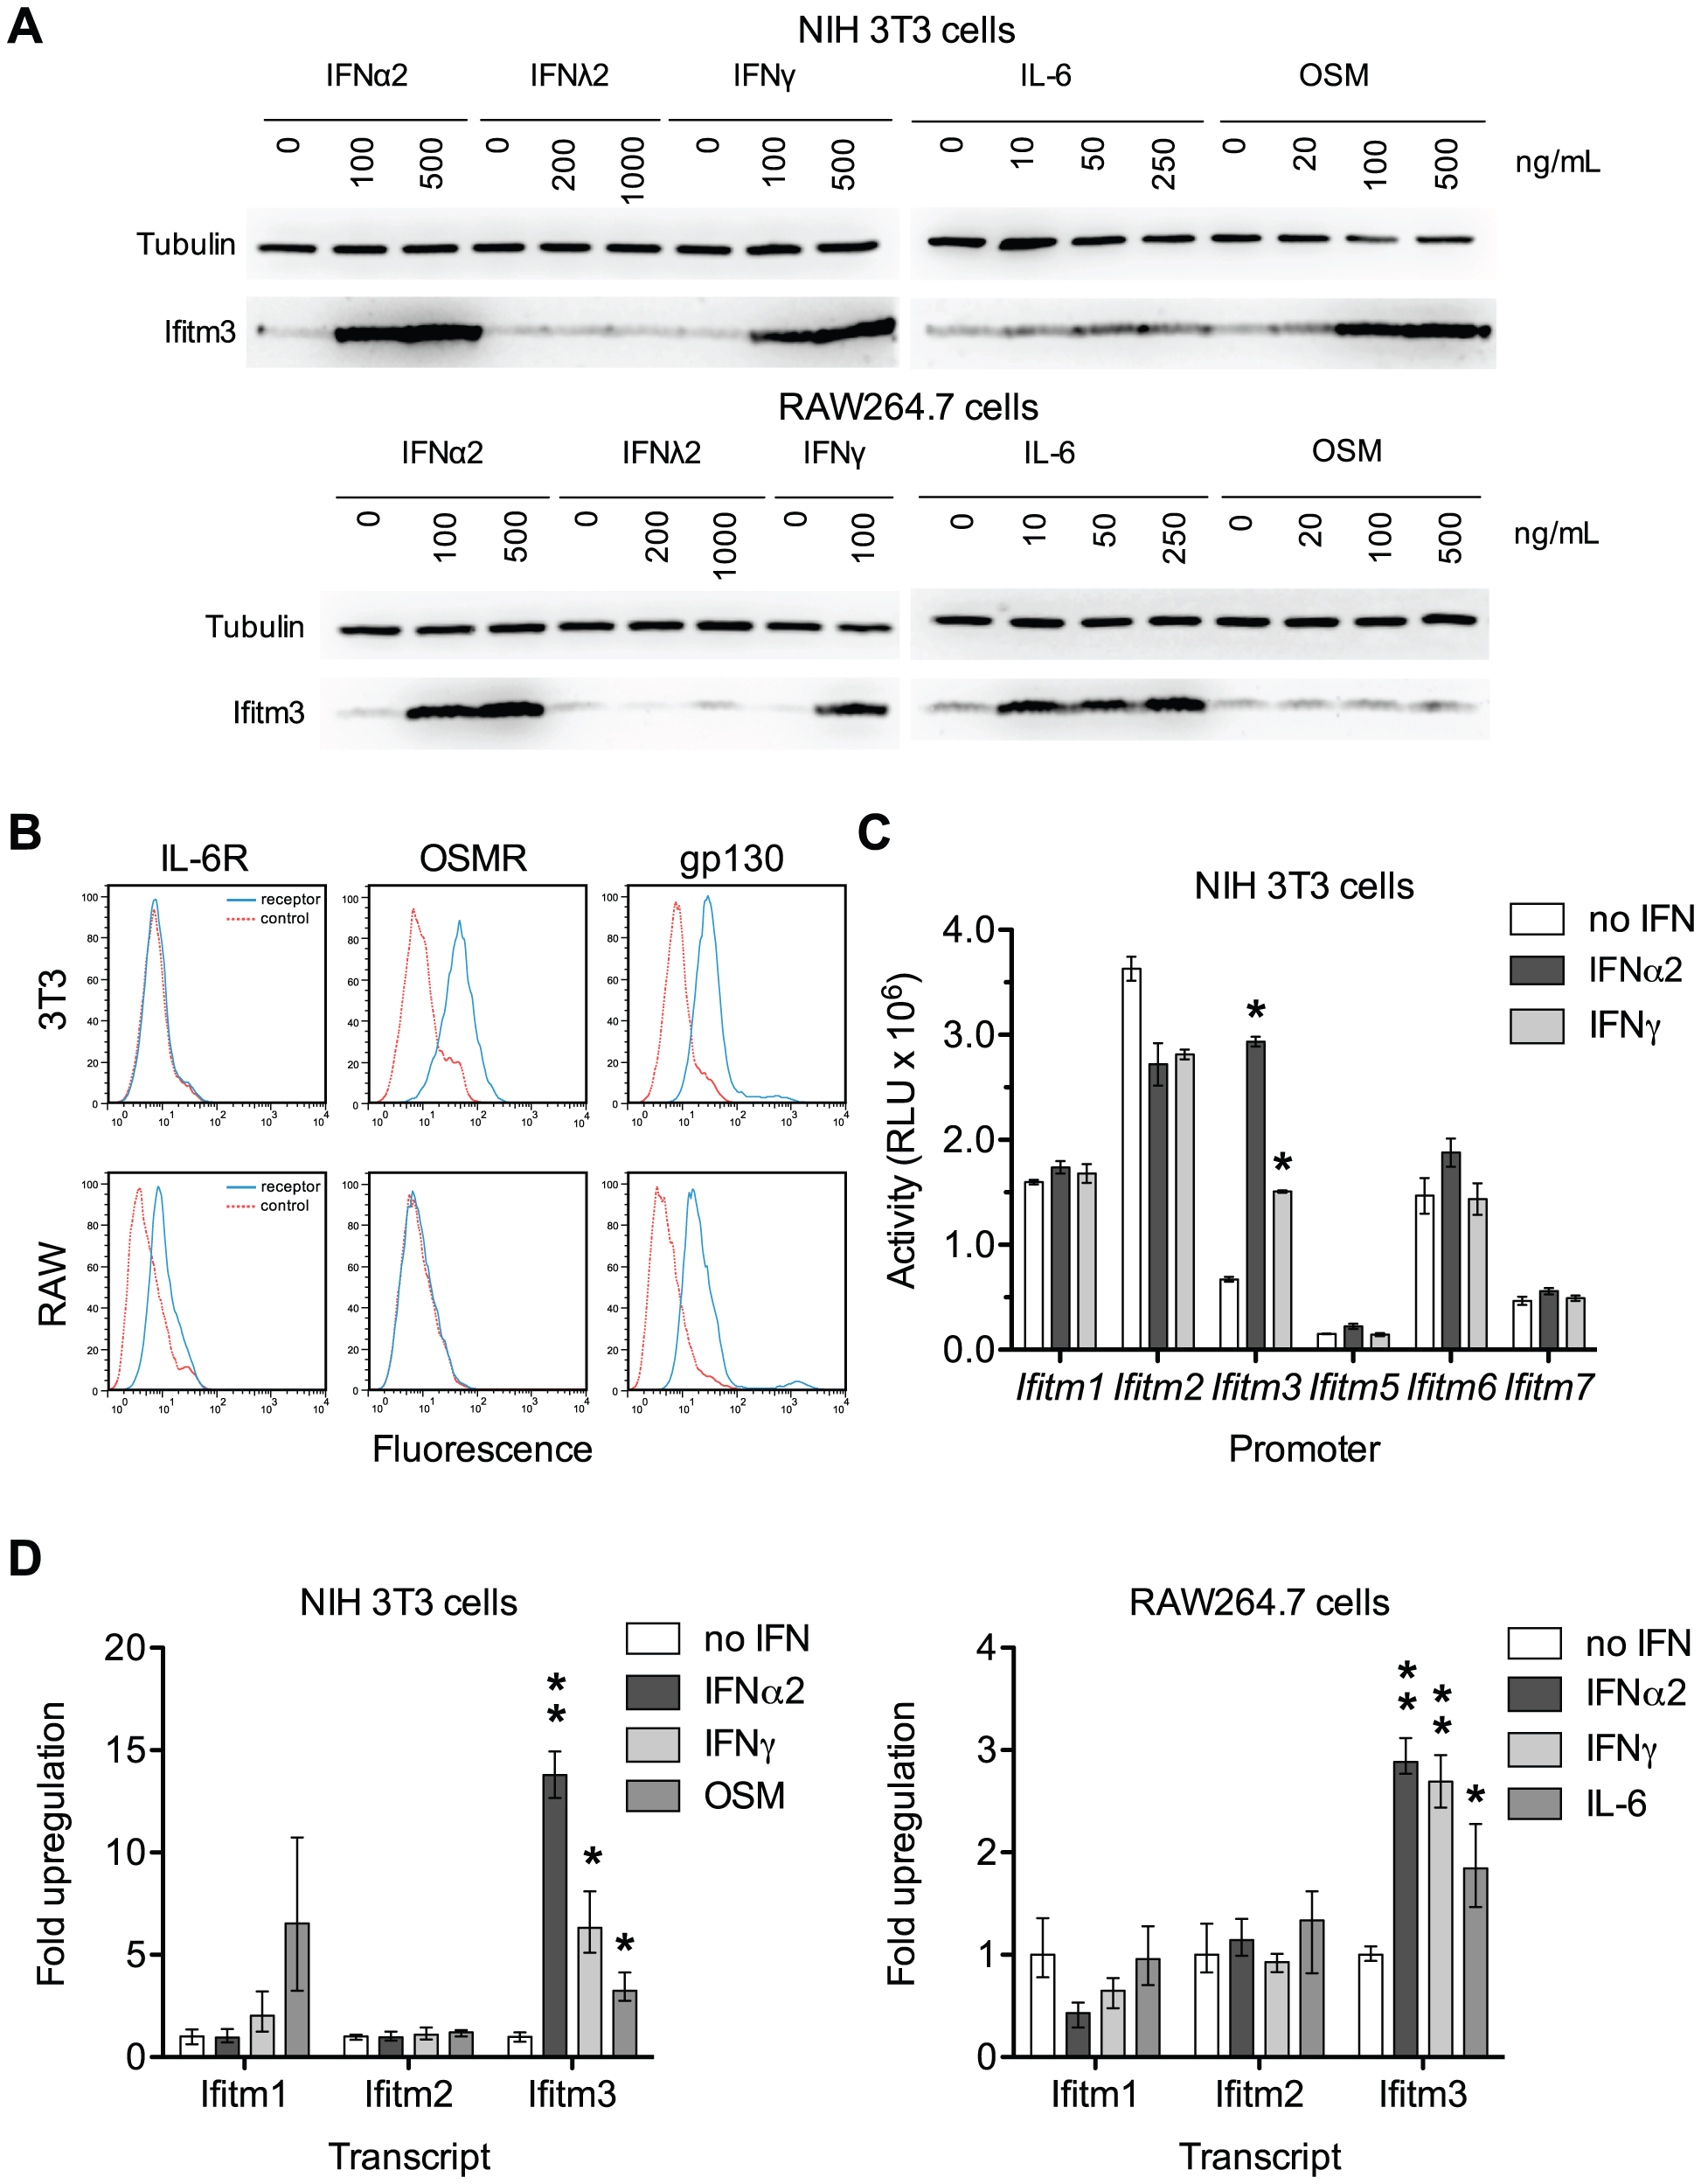 Both interferons and gp130-mediated cytokines induce Ifitm3 expression.